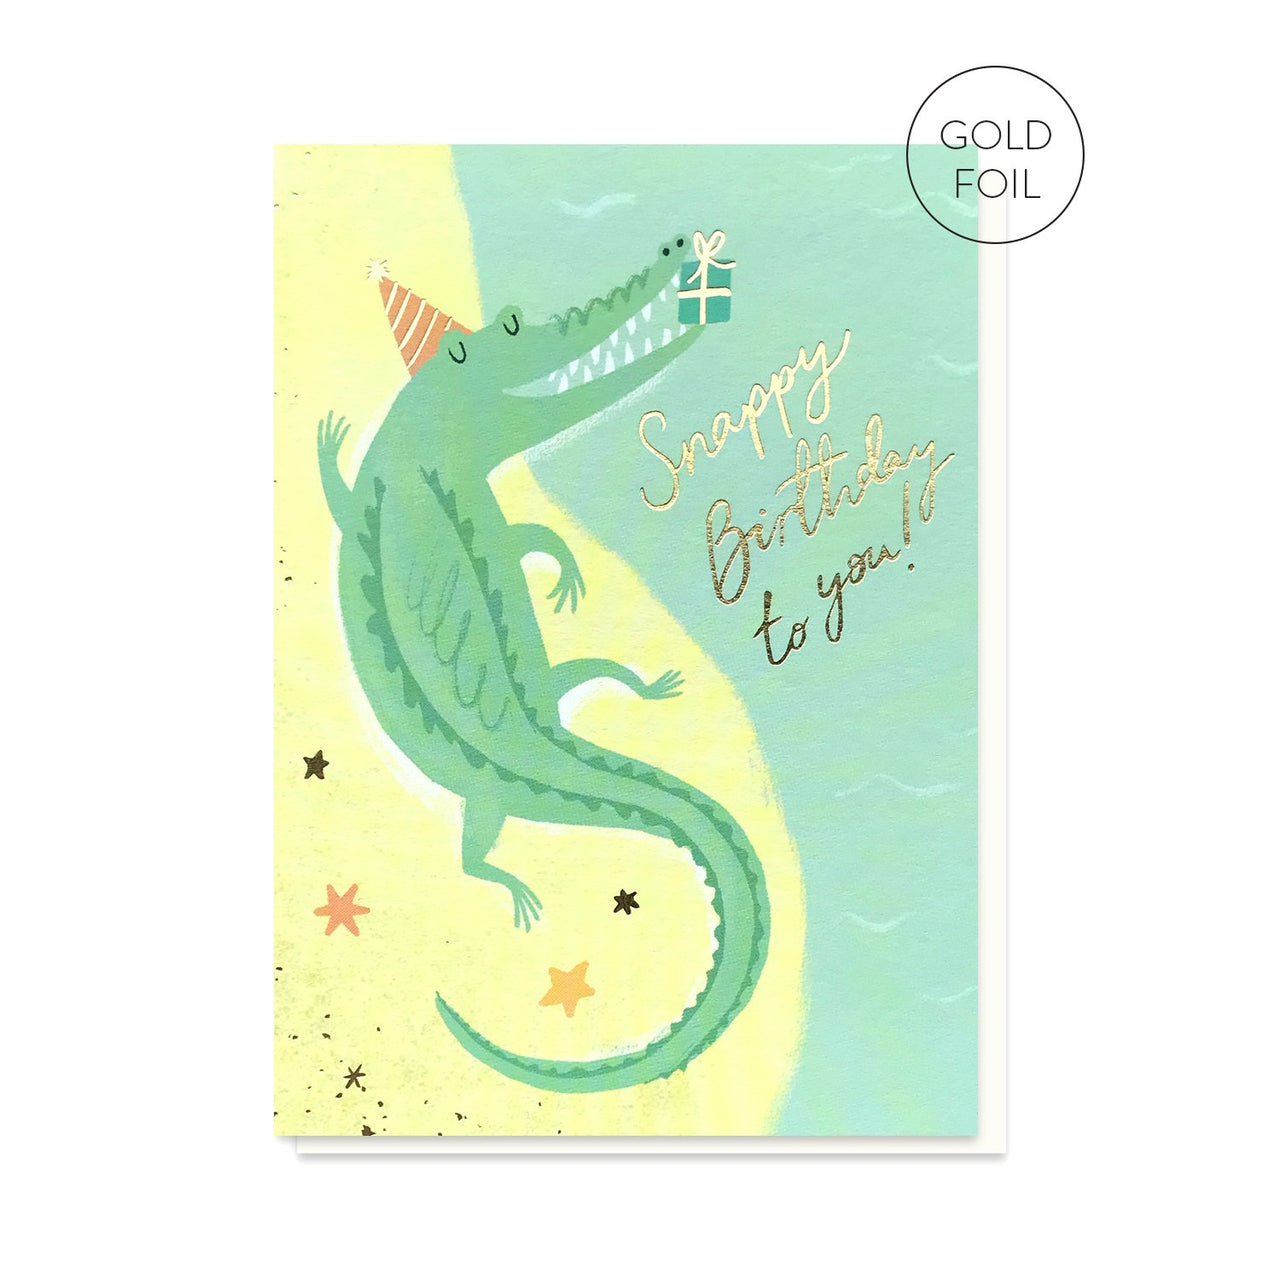 Snappy Birthday crocodile alligator greeting card by Stormy Knight